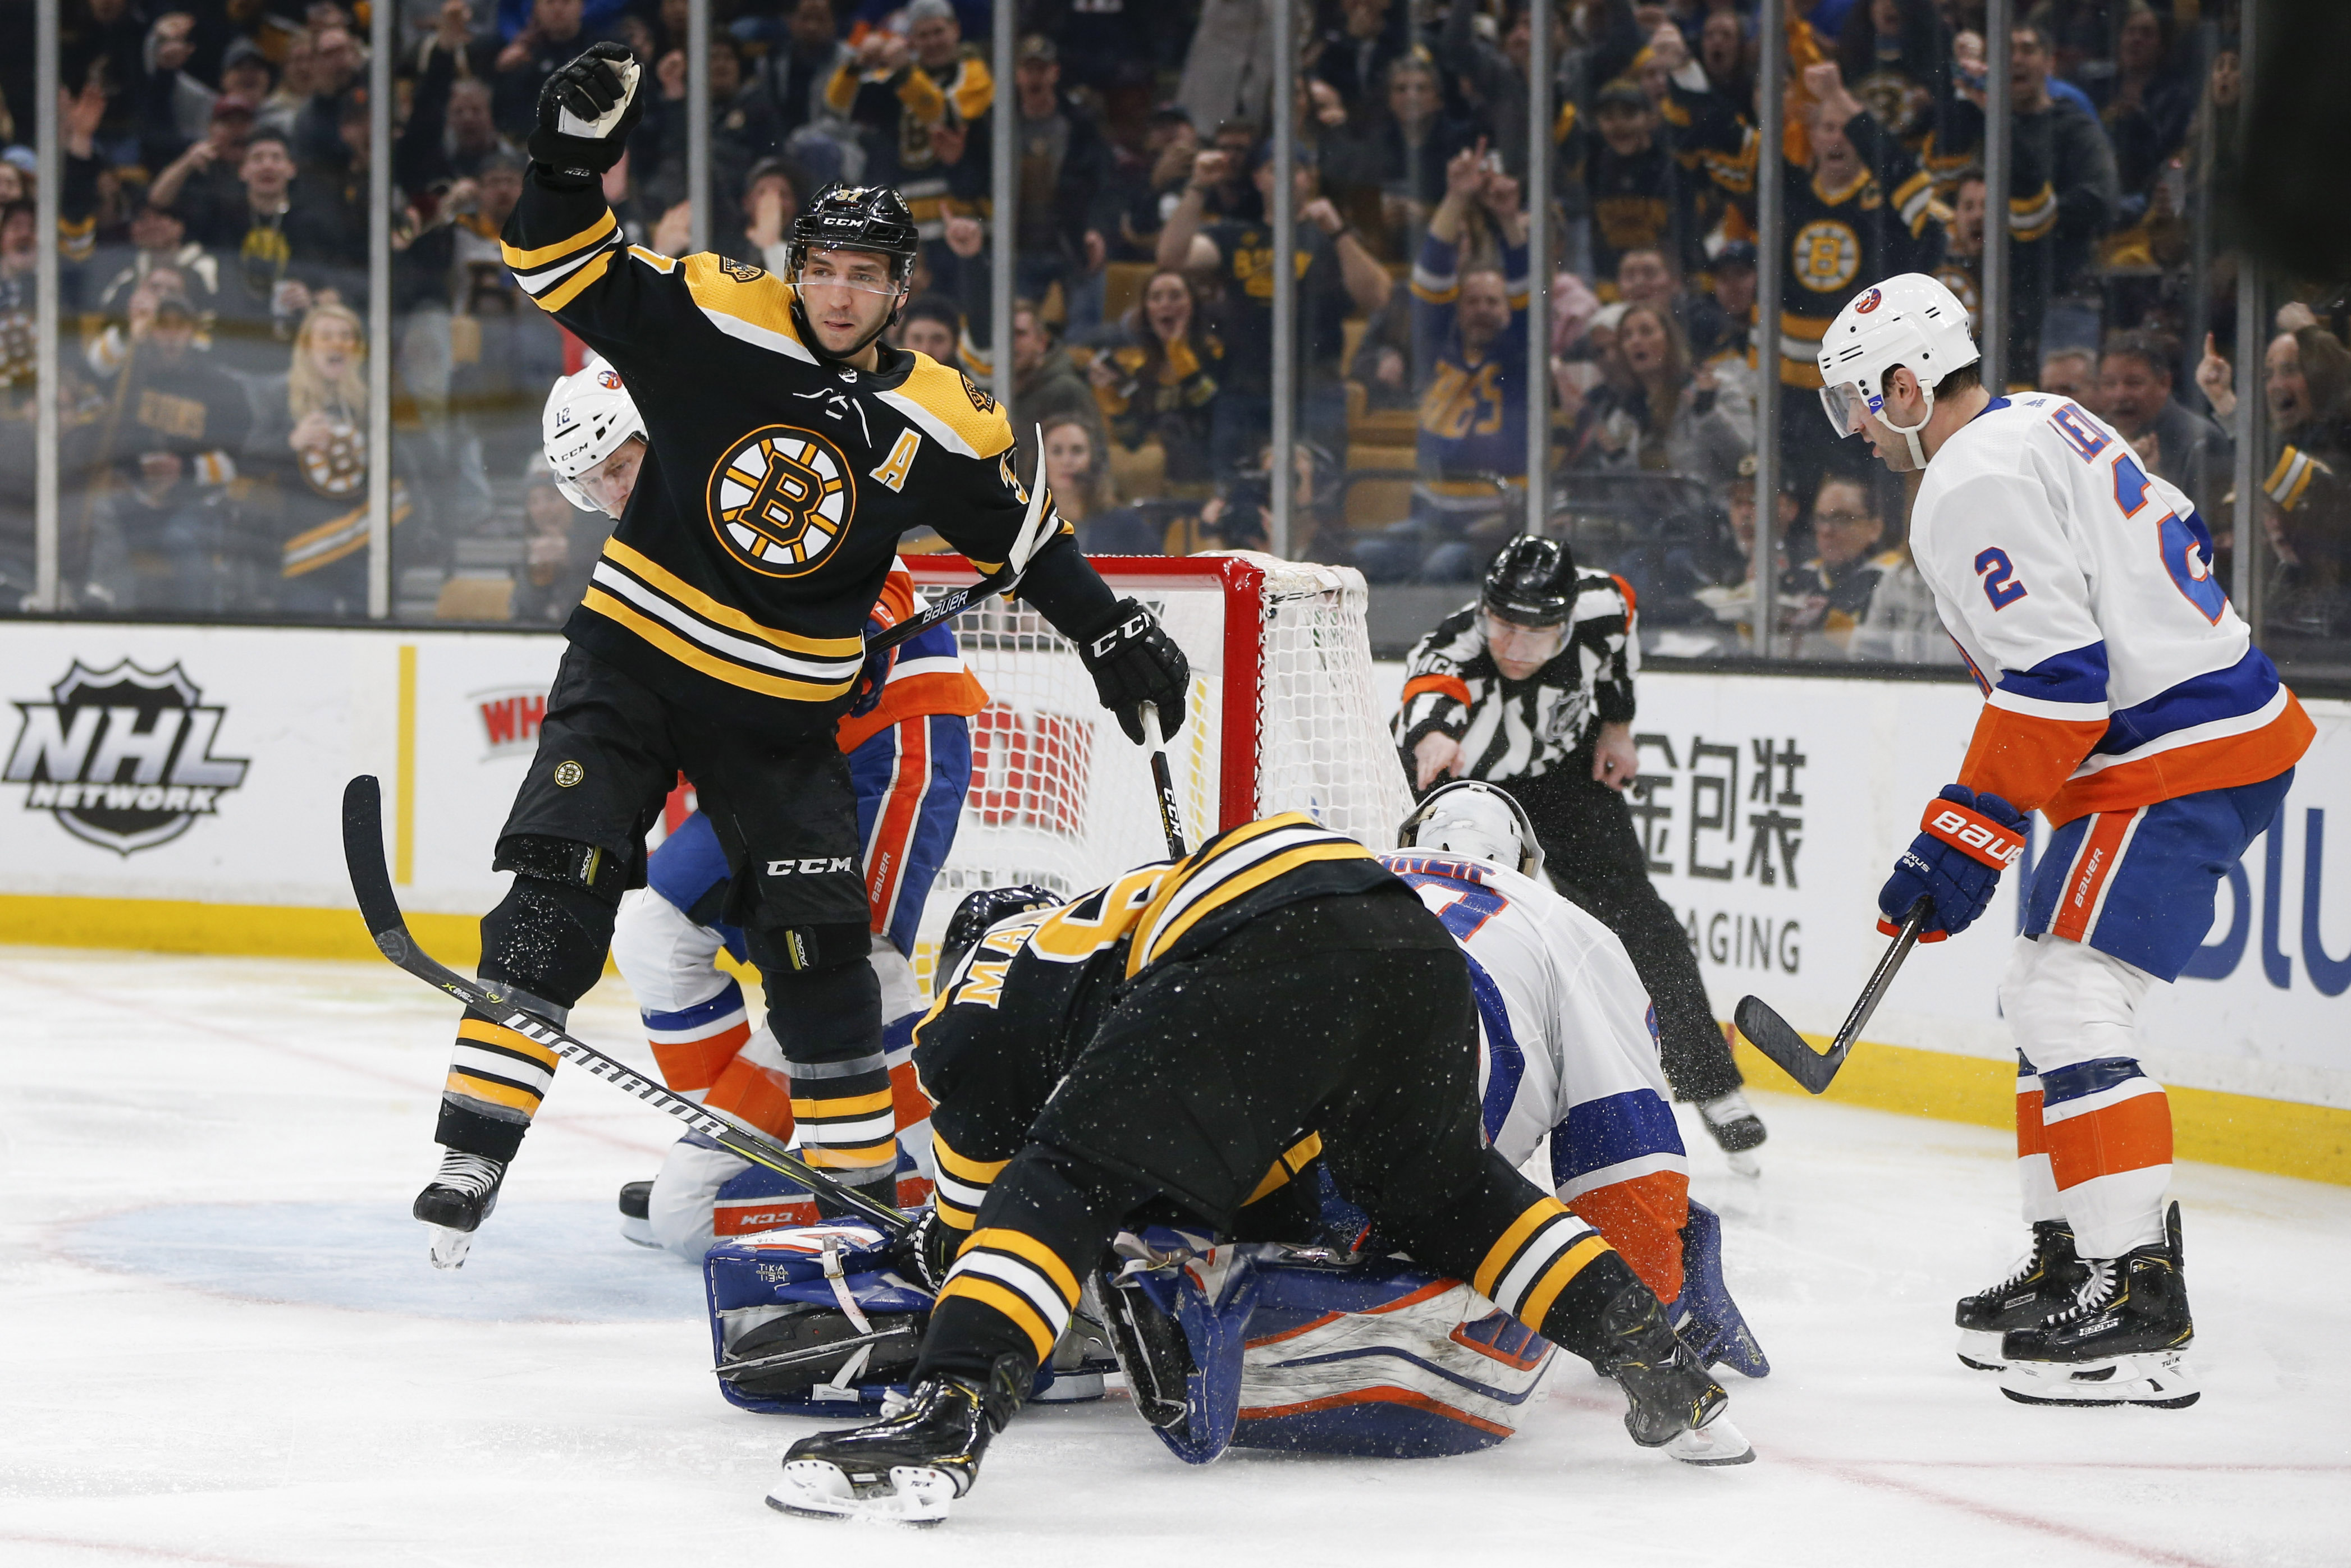 Feb 5, 2019; Boston, MA, USA; Boston Bruins center Patrice Bergeron (37) reacts after scoring a goal on New York Islanders goaltender Robin Lehner (40) during the second period at TD Garden. Mandatory Credit: Greg M. Cooper-USA TODAY Sports